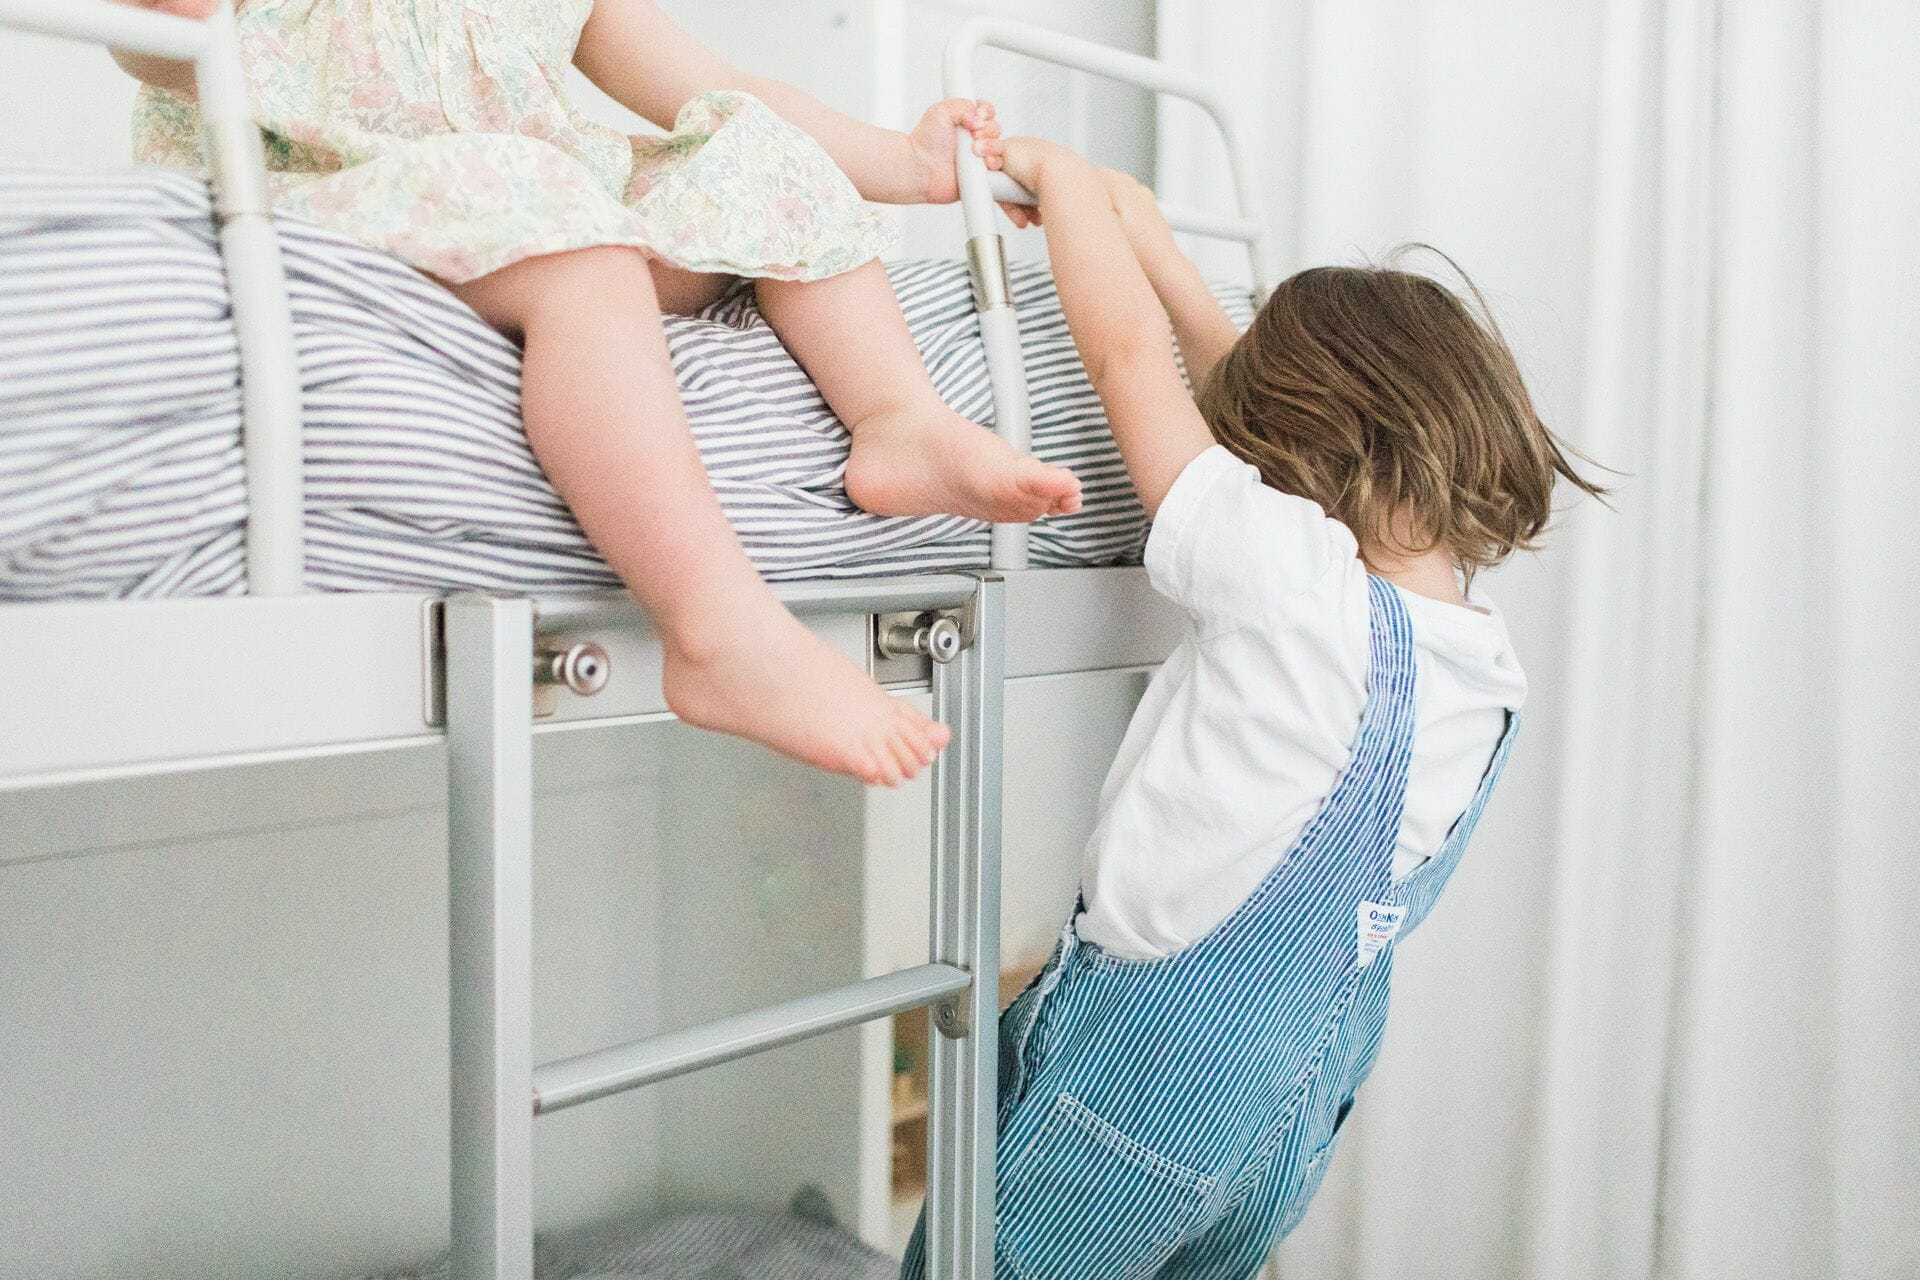 Kids Theo (age 5) and Mae (age 3) having fun on their Kali Duo bunk wall bed.